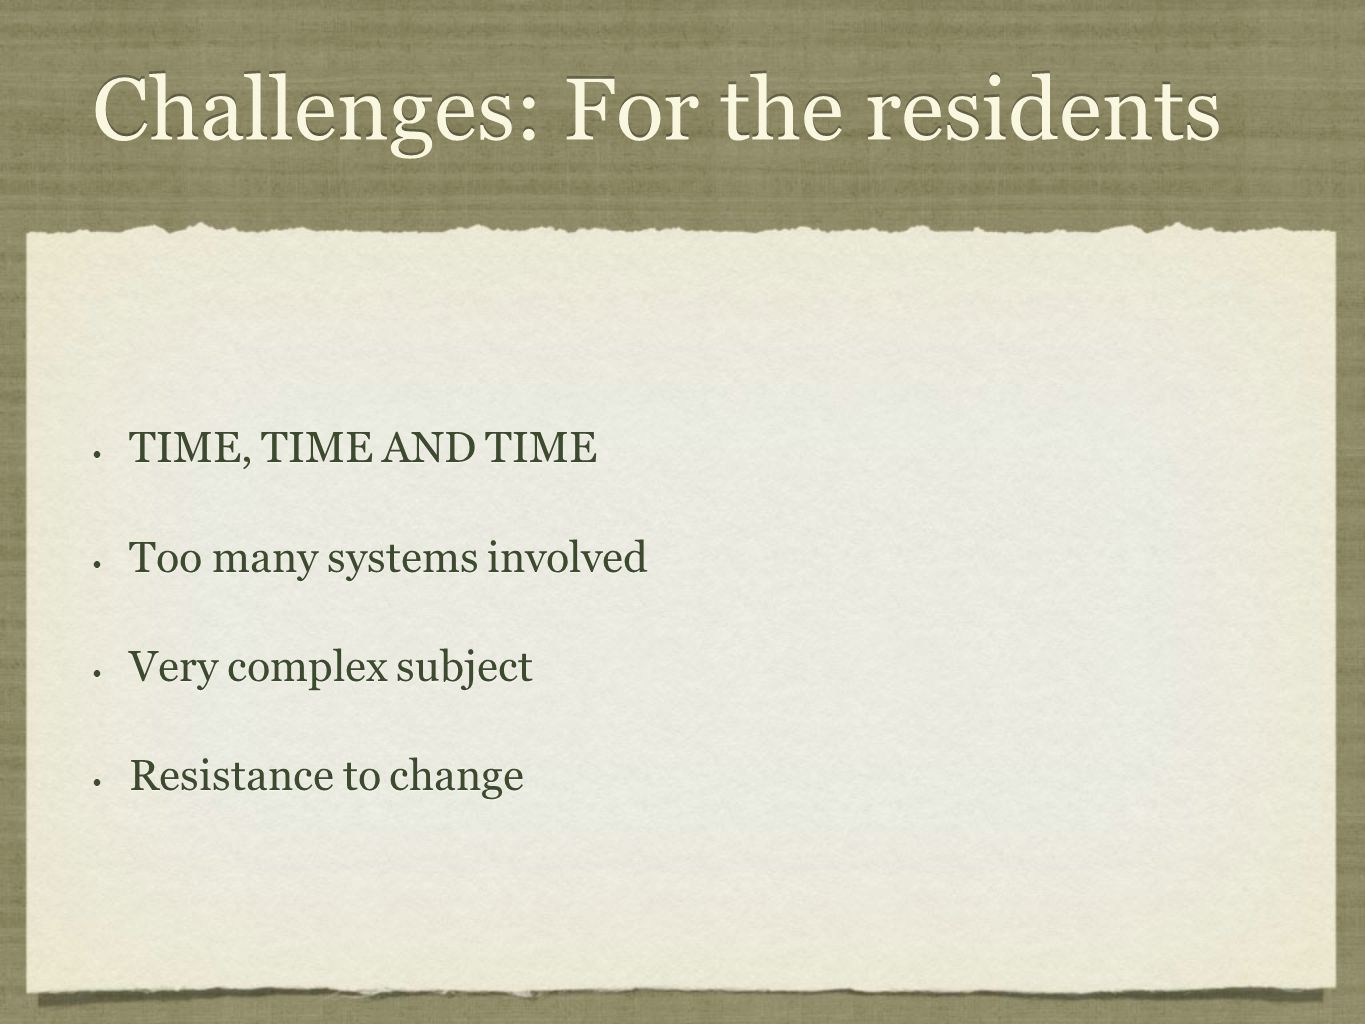 Challenges: For the residents